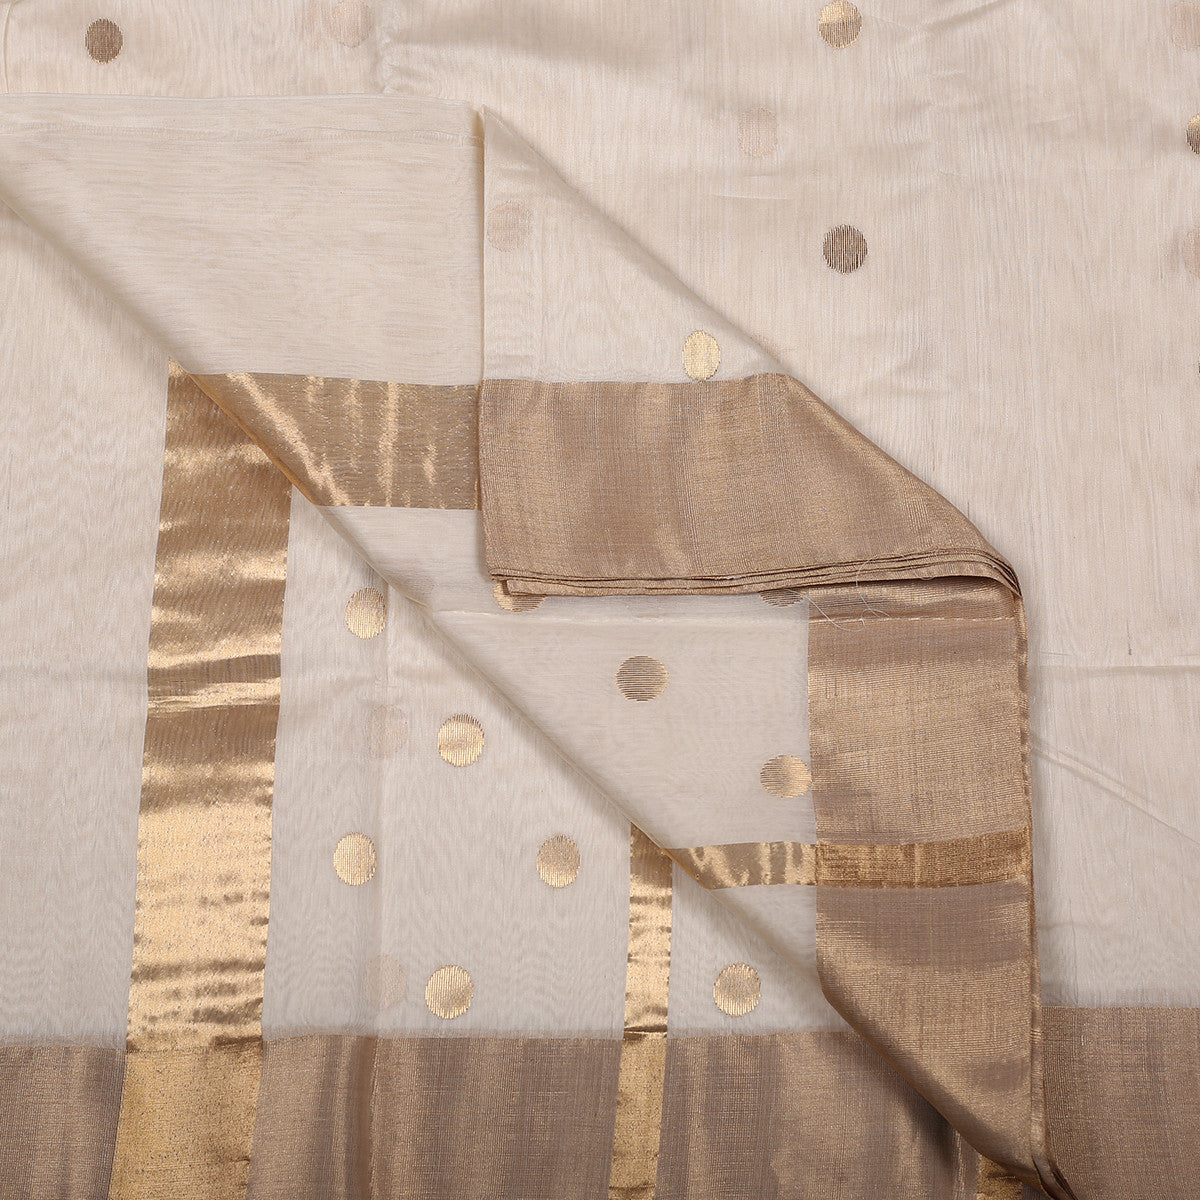 Chanderi Handloom Saree with Blouse in Silk Cotton 24